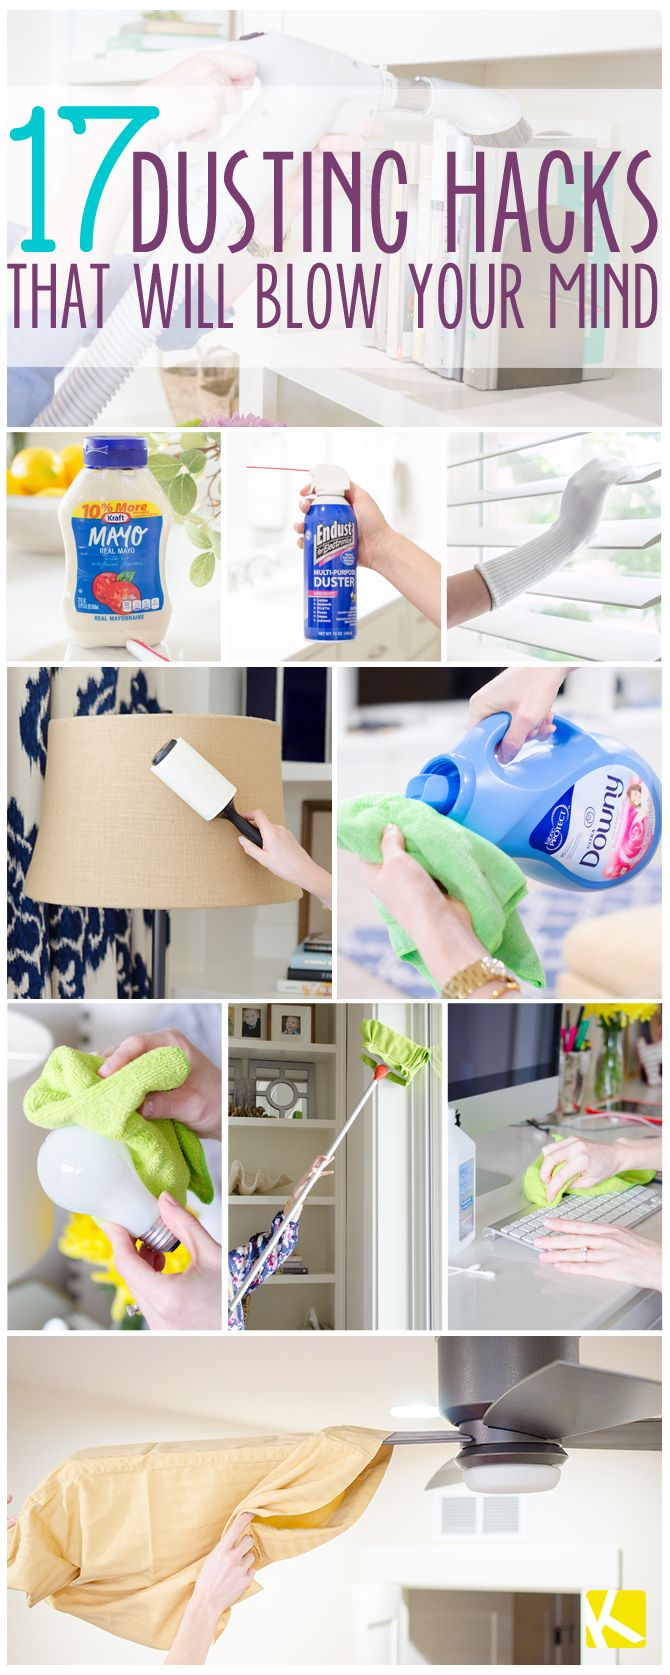 Schoonmaaktips Voor Tapijt 17 Incredible Ways To Dust That Will Blow Your Mind Schoonmaaktips